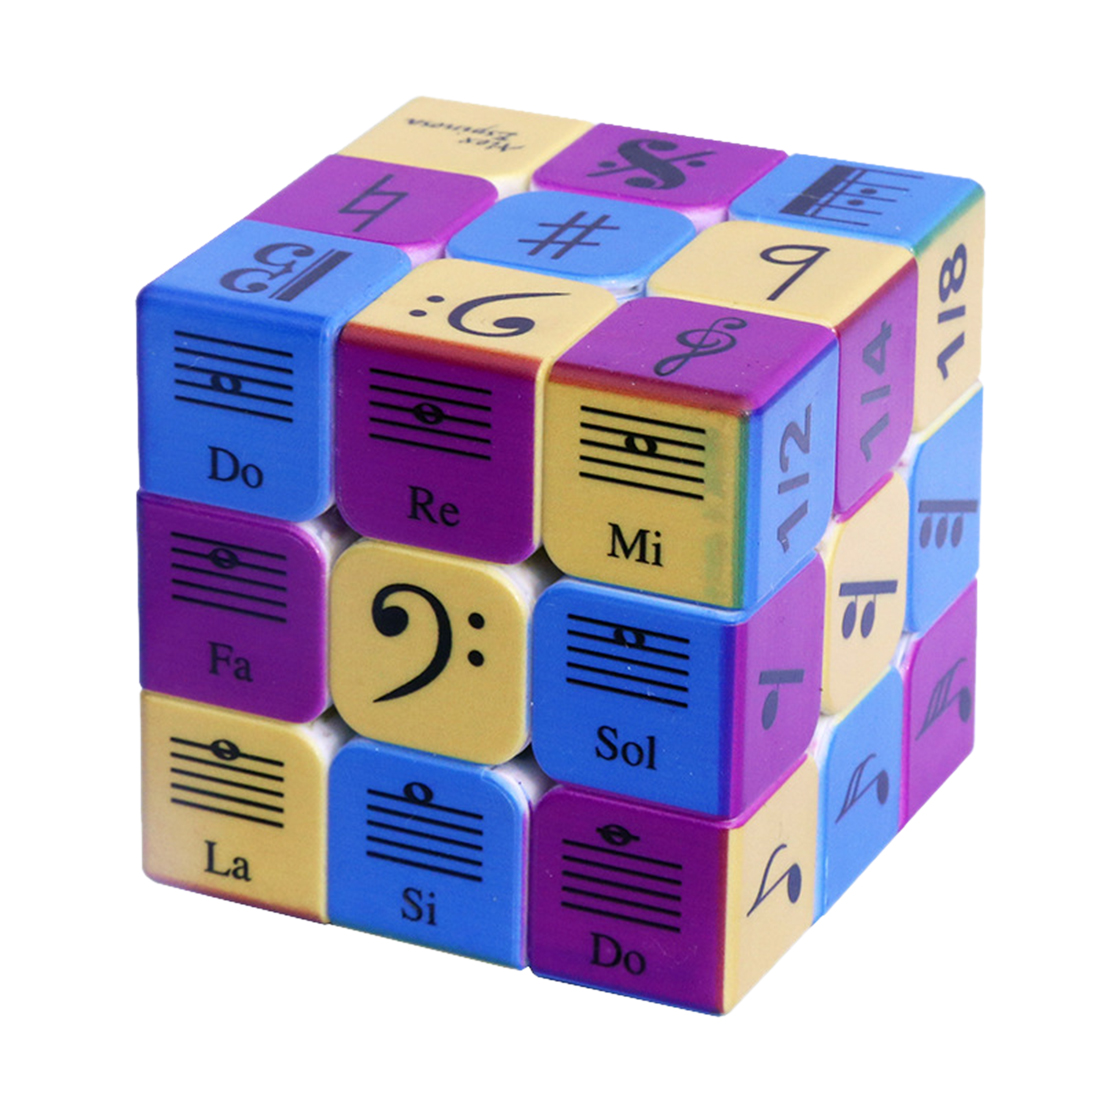 3x3x3 Music Notes Pattern Magic Cube Speed Puzzle Cube For Children Braining Kit Adult Training Set